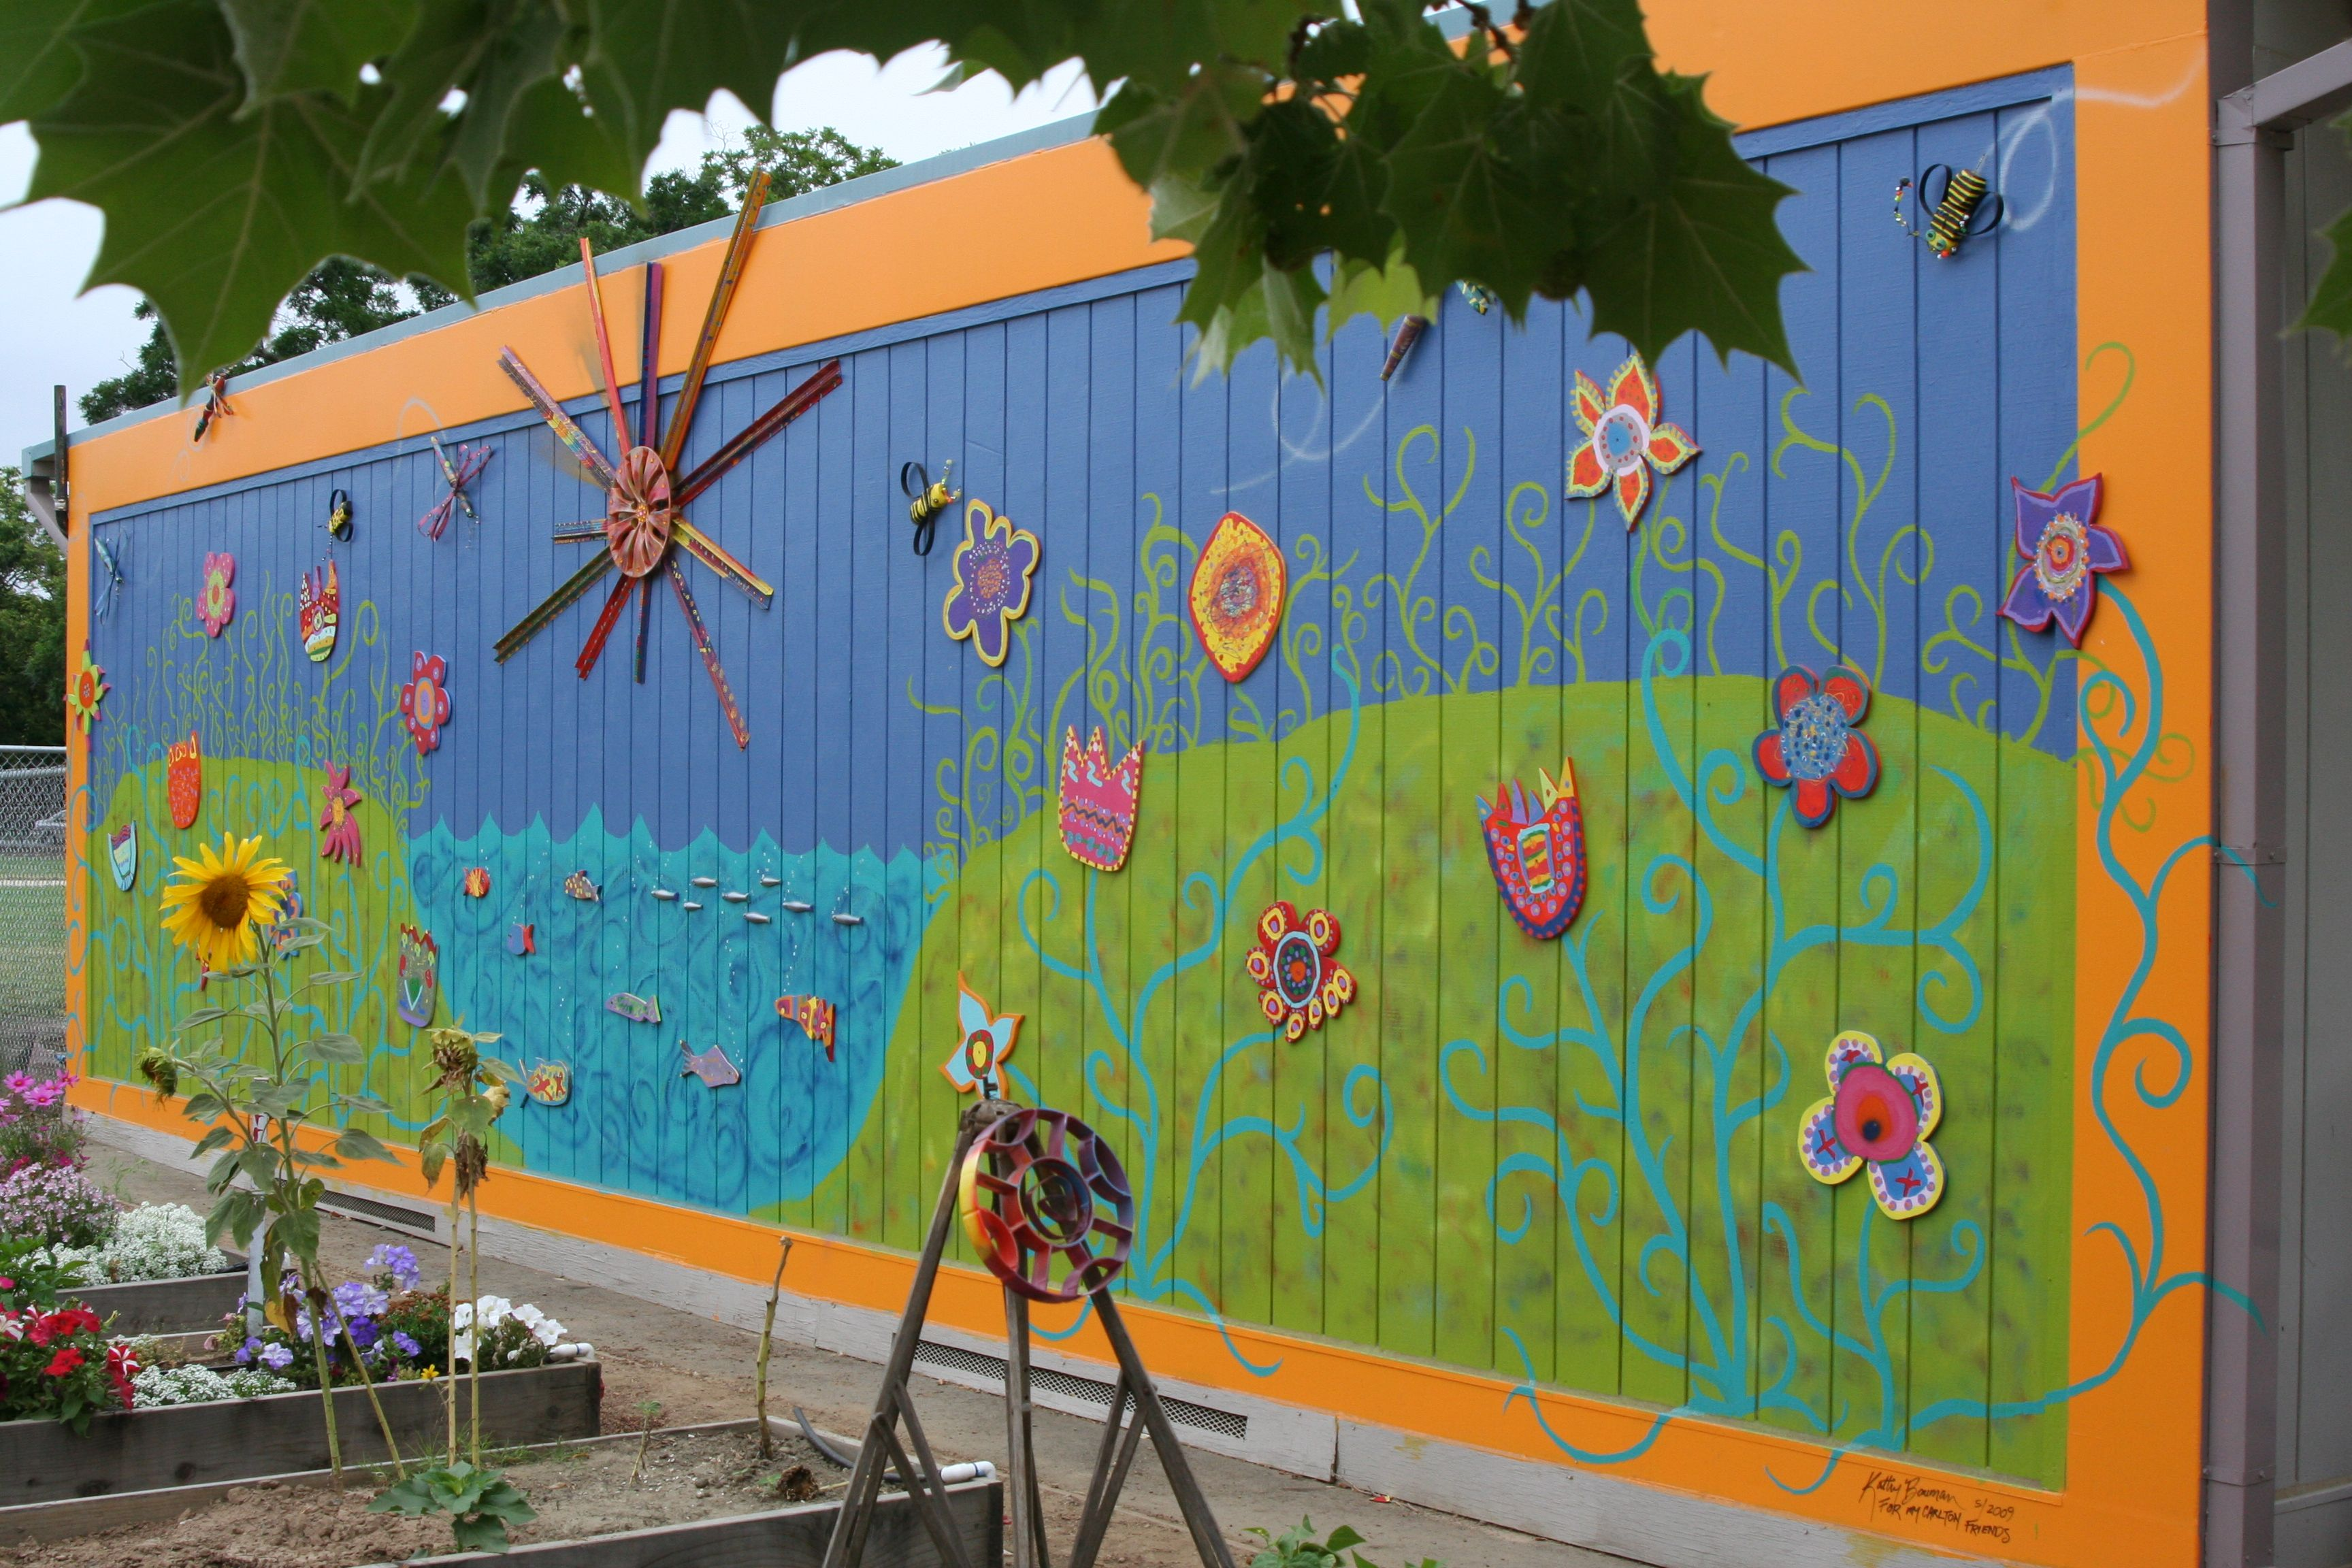 A Mural Painted At A School The Sun Dragonflies Bees